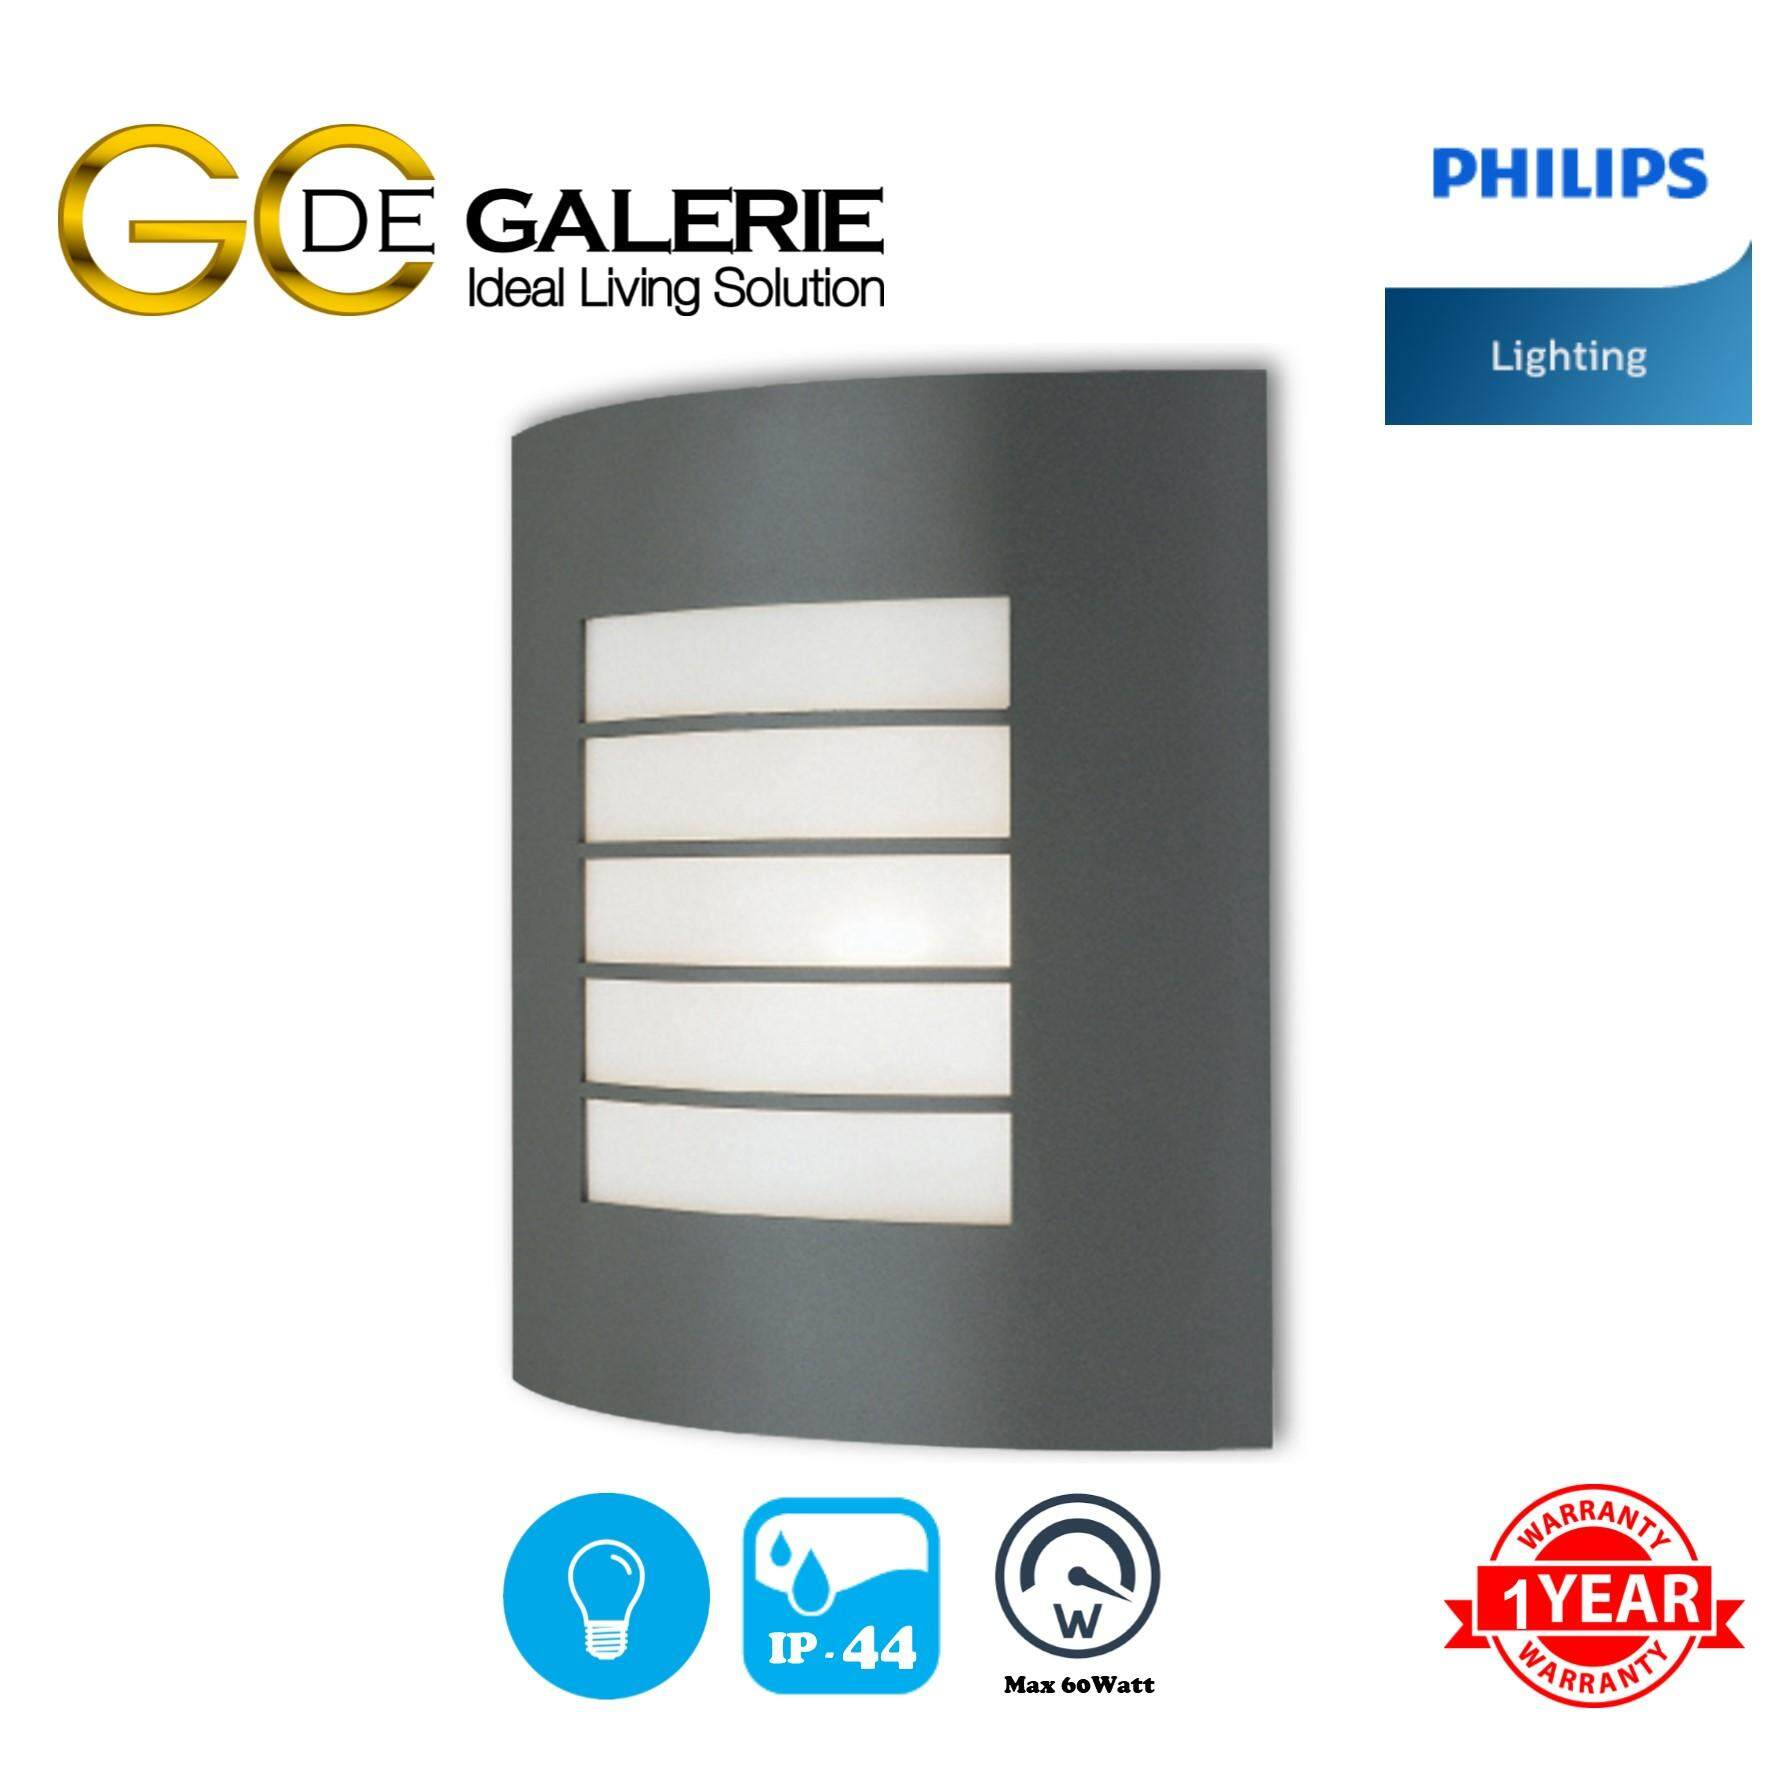 WALL LIGHT OUTDOOR PHILIPS 01726/46/93 EWS300 DGY/ANTRACIT